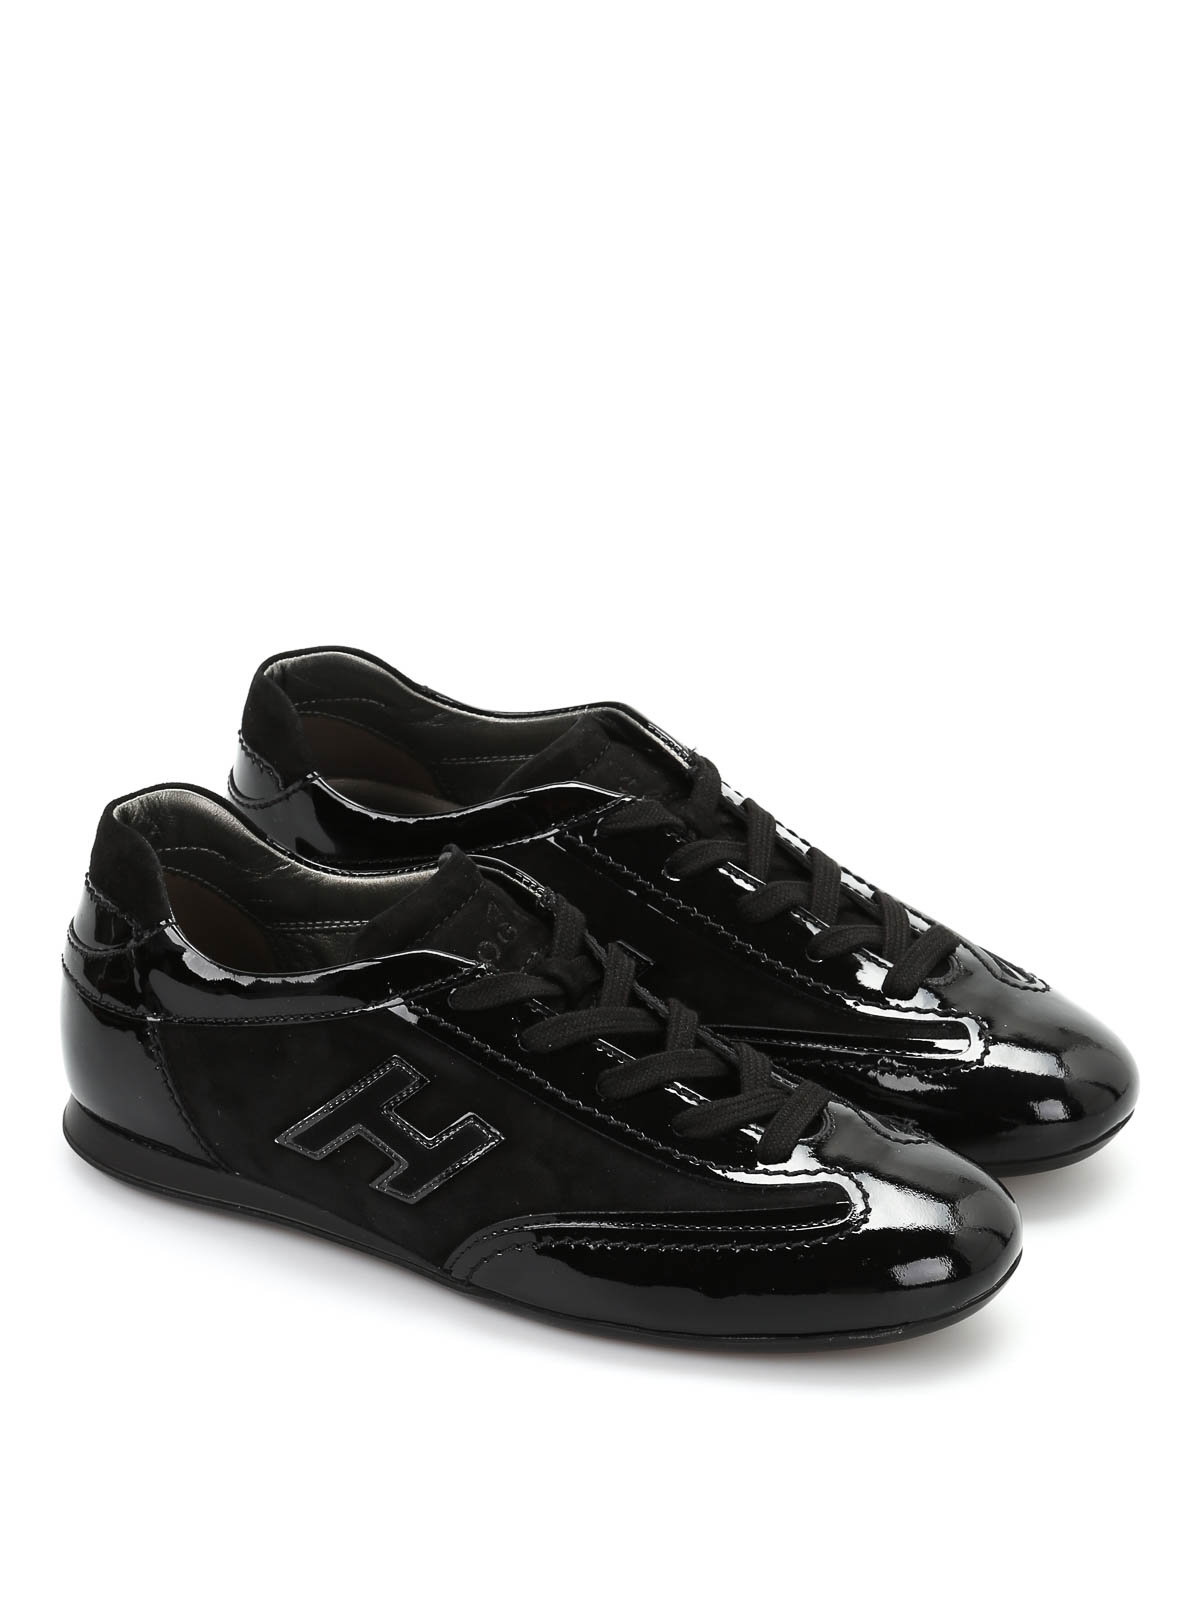 Hogan Olympia Patent Leather Sneakers Trainers